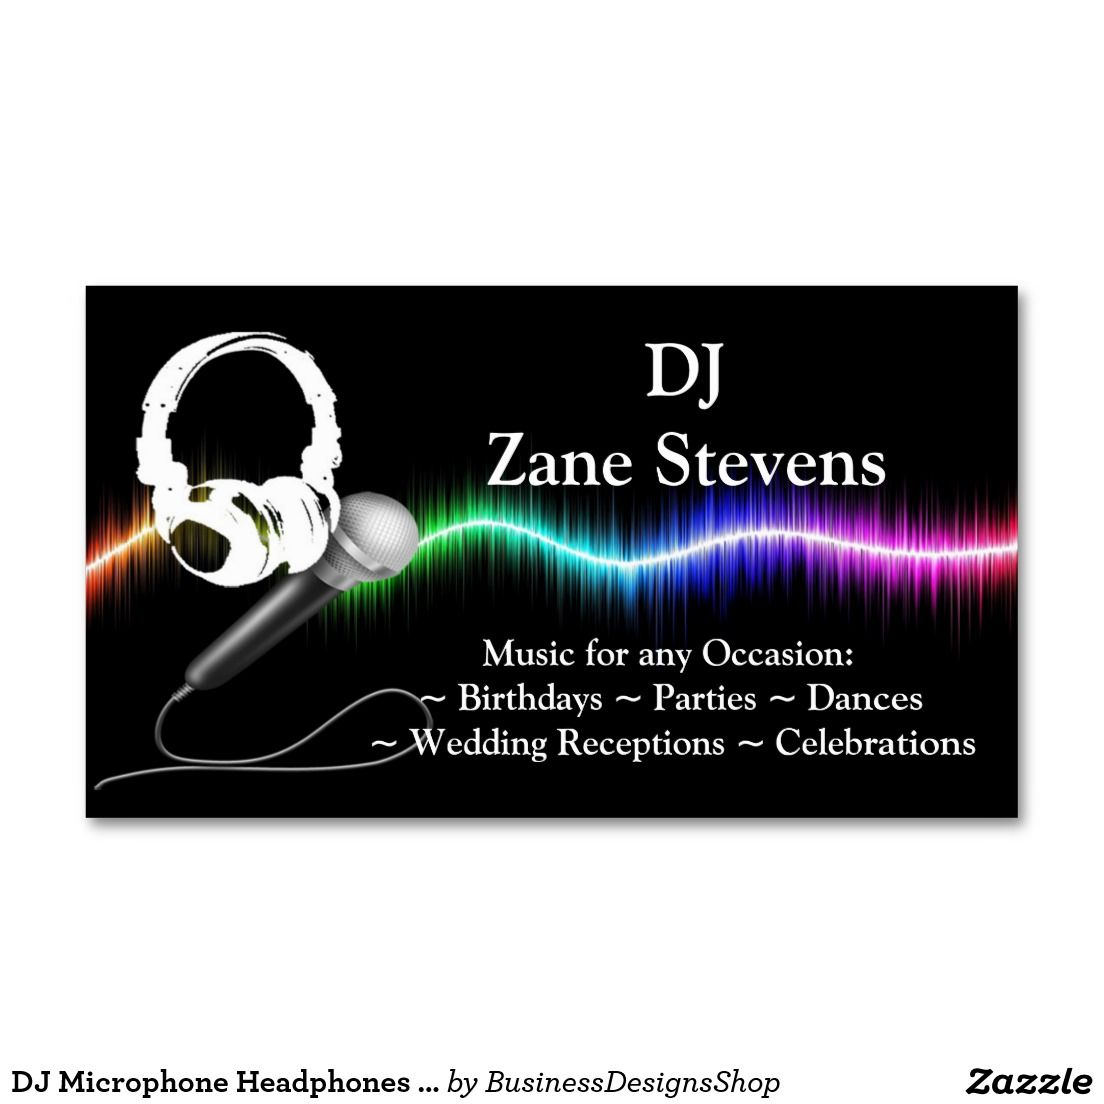 Dj microphone headphones business card template djmusic dj microphone headphones business card template magicingreecefo Images